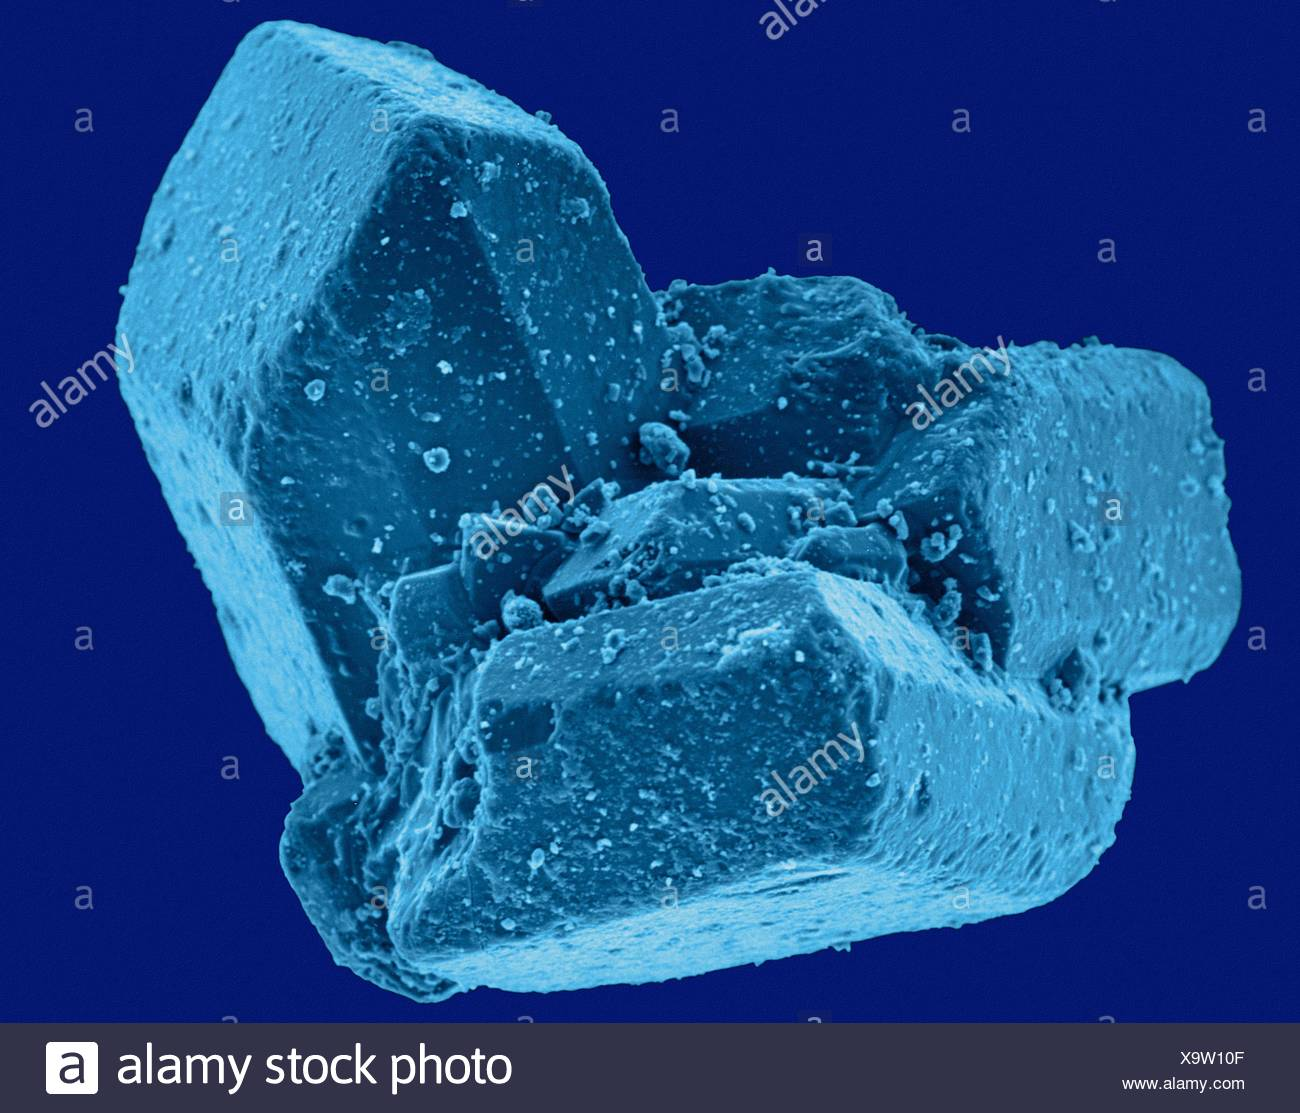 Coloured scanning electron micrograph (SEM) of Table sugar (sucrose) crystals. Sucrose, or common table sugar (also called saccharose), is a disaccharide that consists of two component monosaccharidesglucose and fructose. It is best known for its role in human nutrition and is formed by plants but not by higher organisms. It is commonly used as a sweetener. Magnification: x61 when shortest axis printed at 25 millimetres. - Stock Image